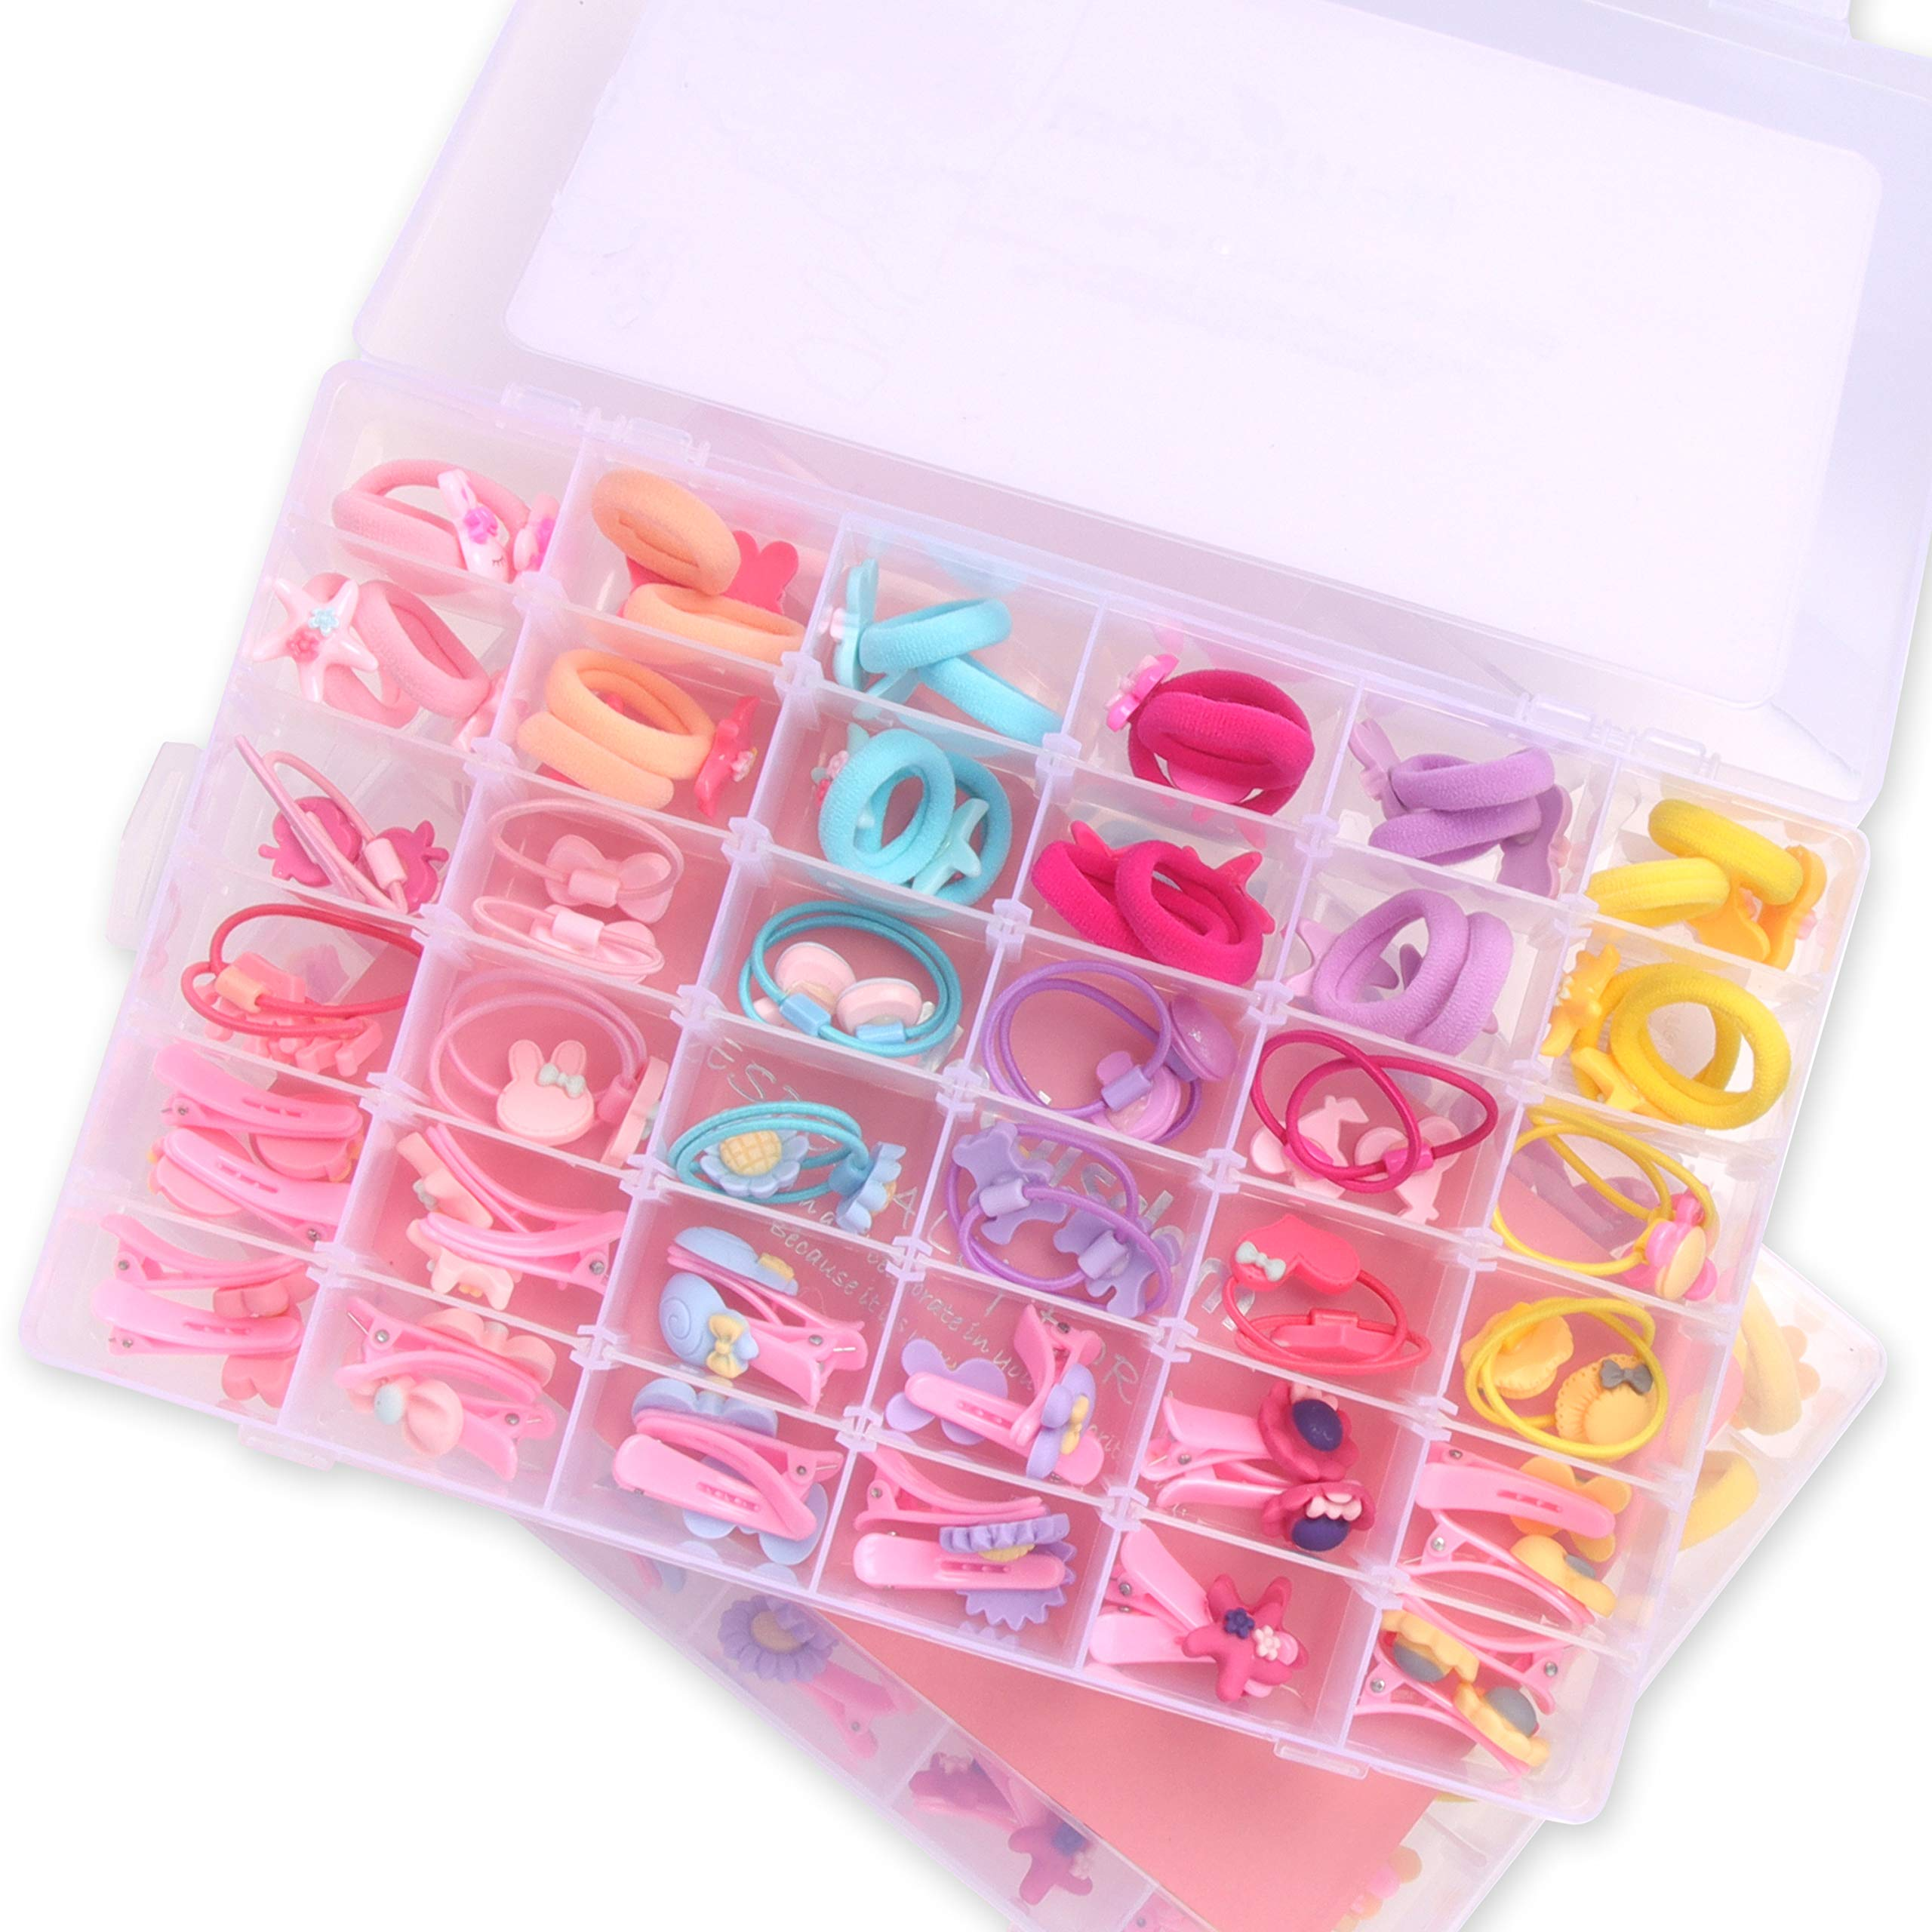 NeWisdom 72 PCS Baby Girls Hair Accessory Set, Cute Hair Clips Hair Bands for Girls Toddler, Multi-Style Elastic Hair Ties Hair Accessories for Girls Age 3 4 5 – Gift Packing